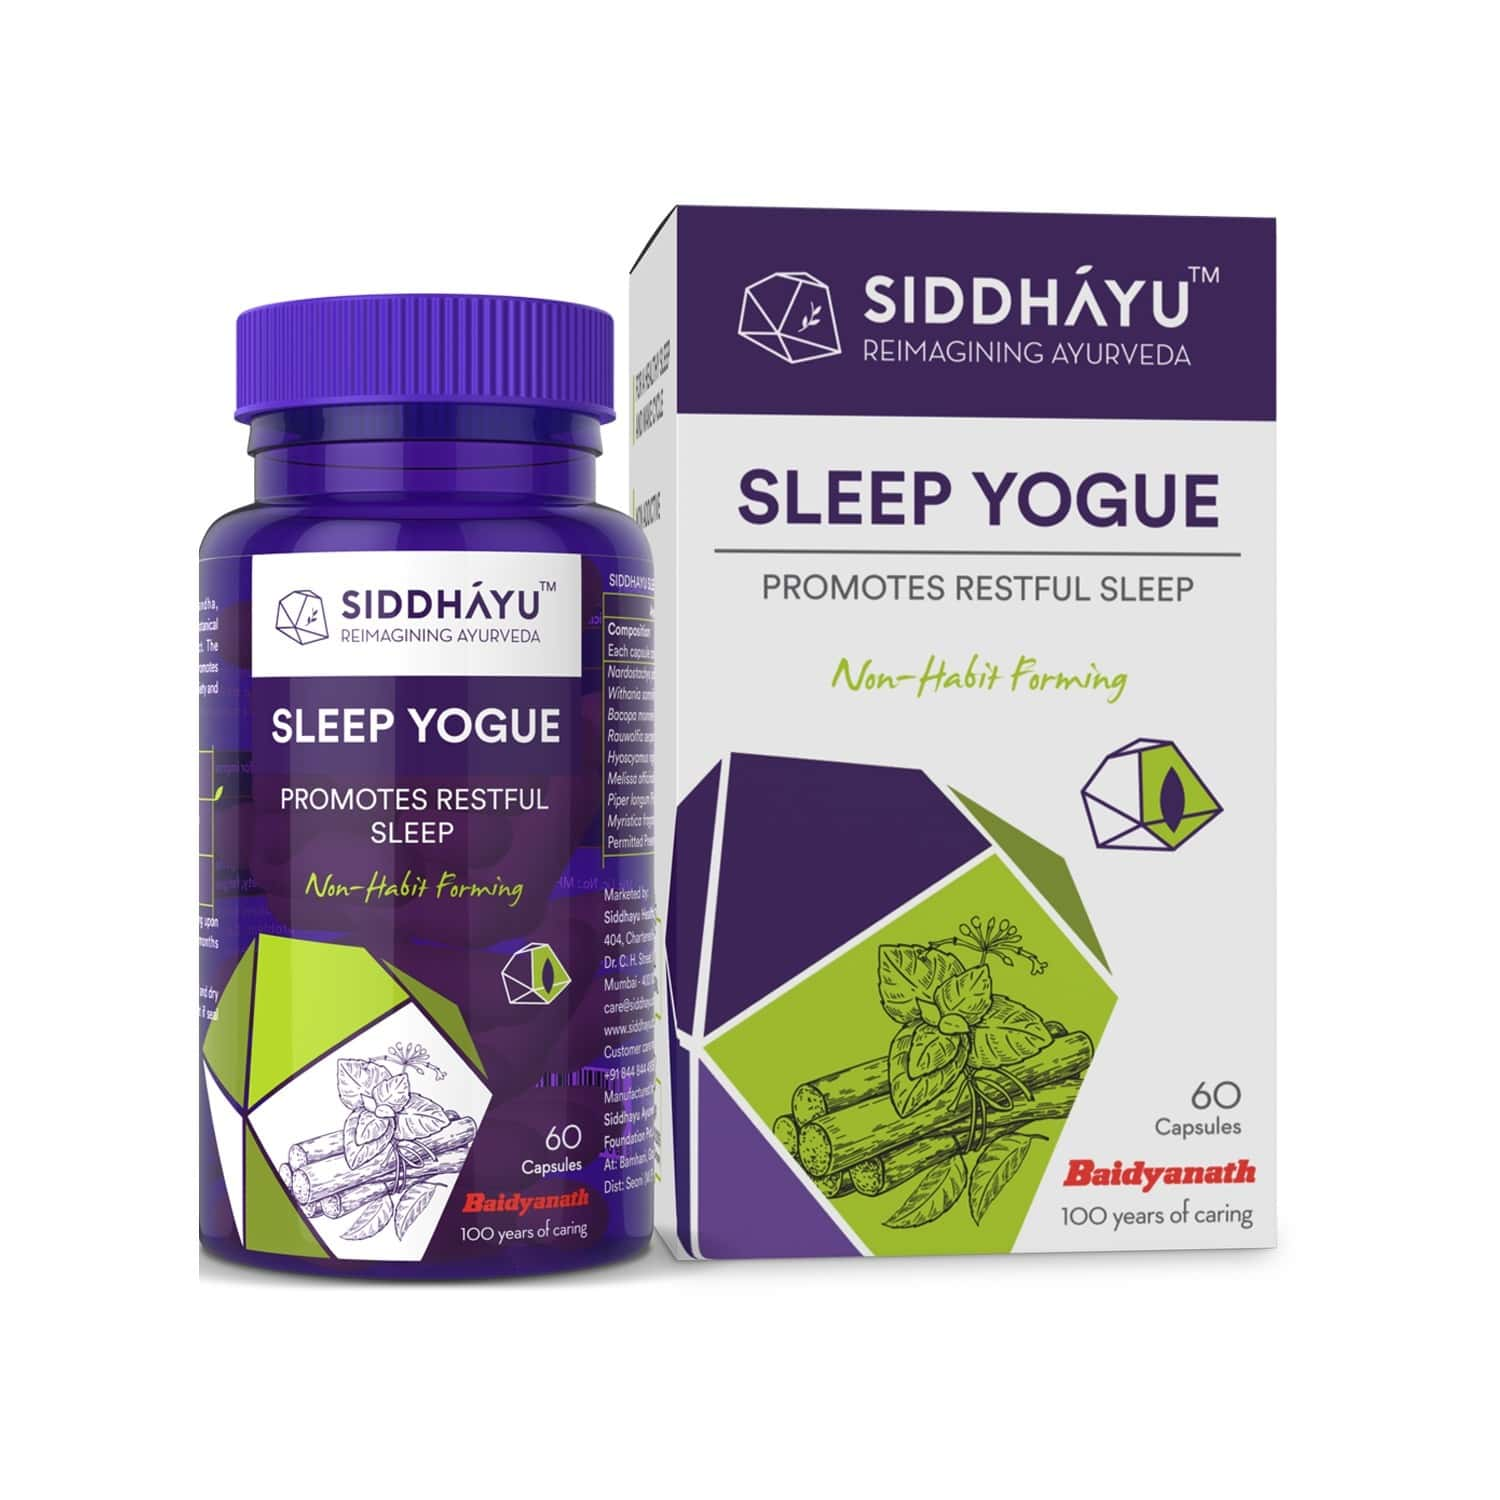 Siddhayu Sleep Yogue Capsules To Promote Restful Sleeps | 60 Capsule X 1